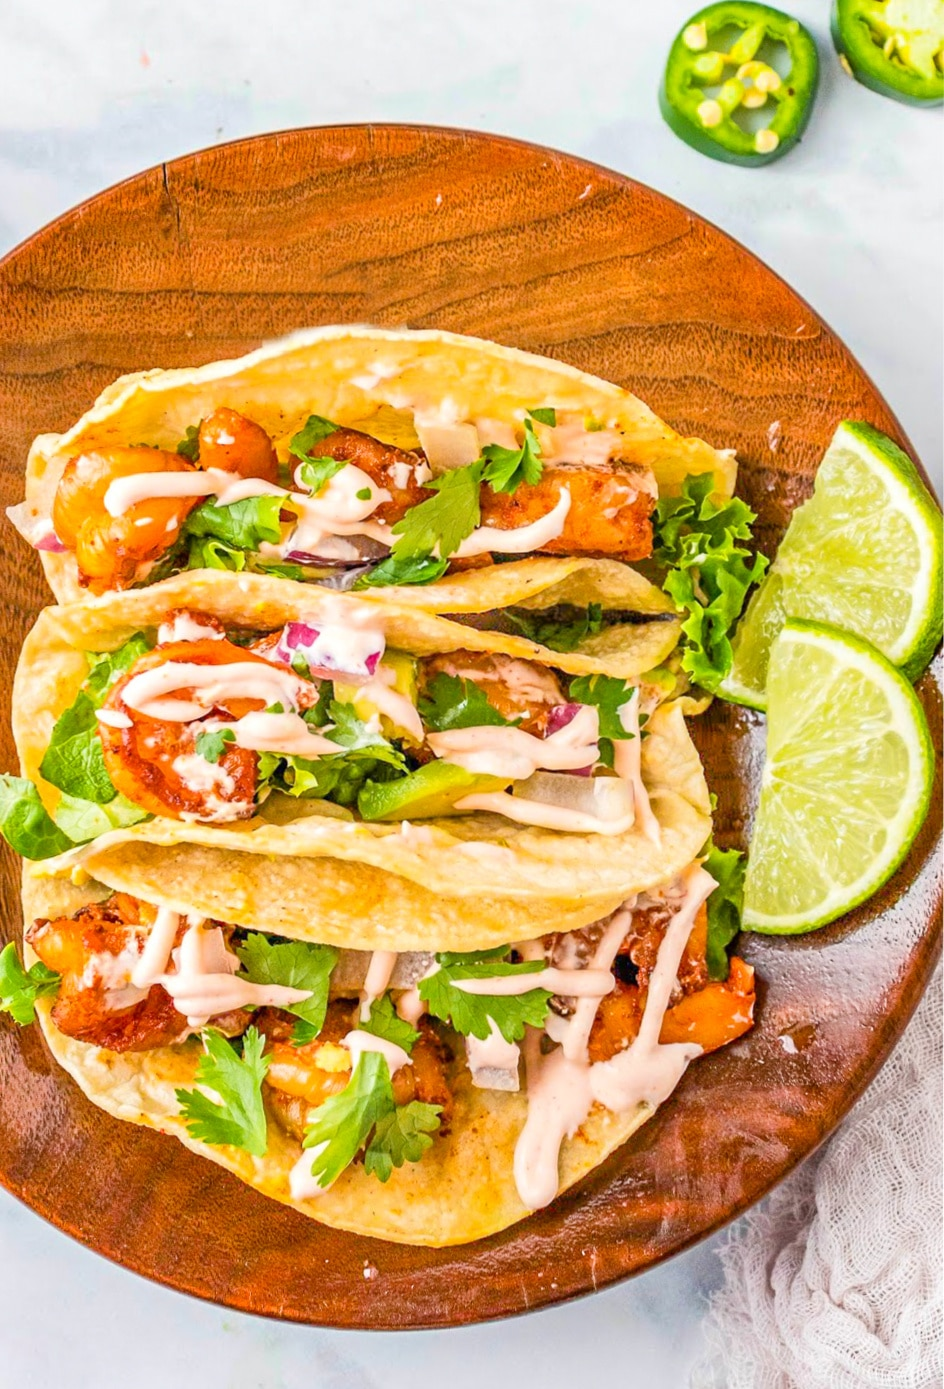 Prepared shrimp tacos on plate with lime slices.